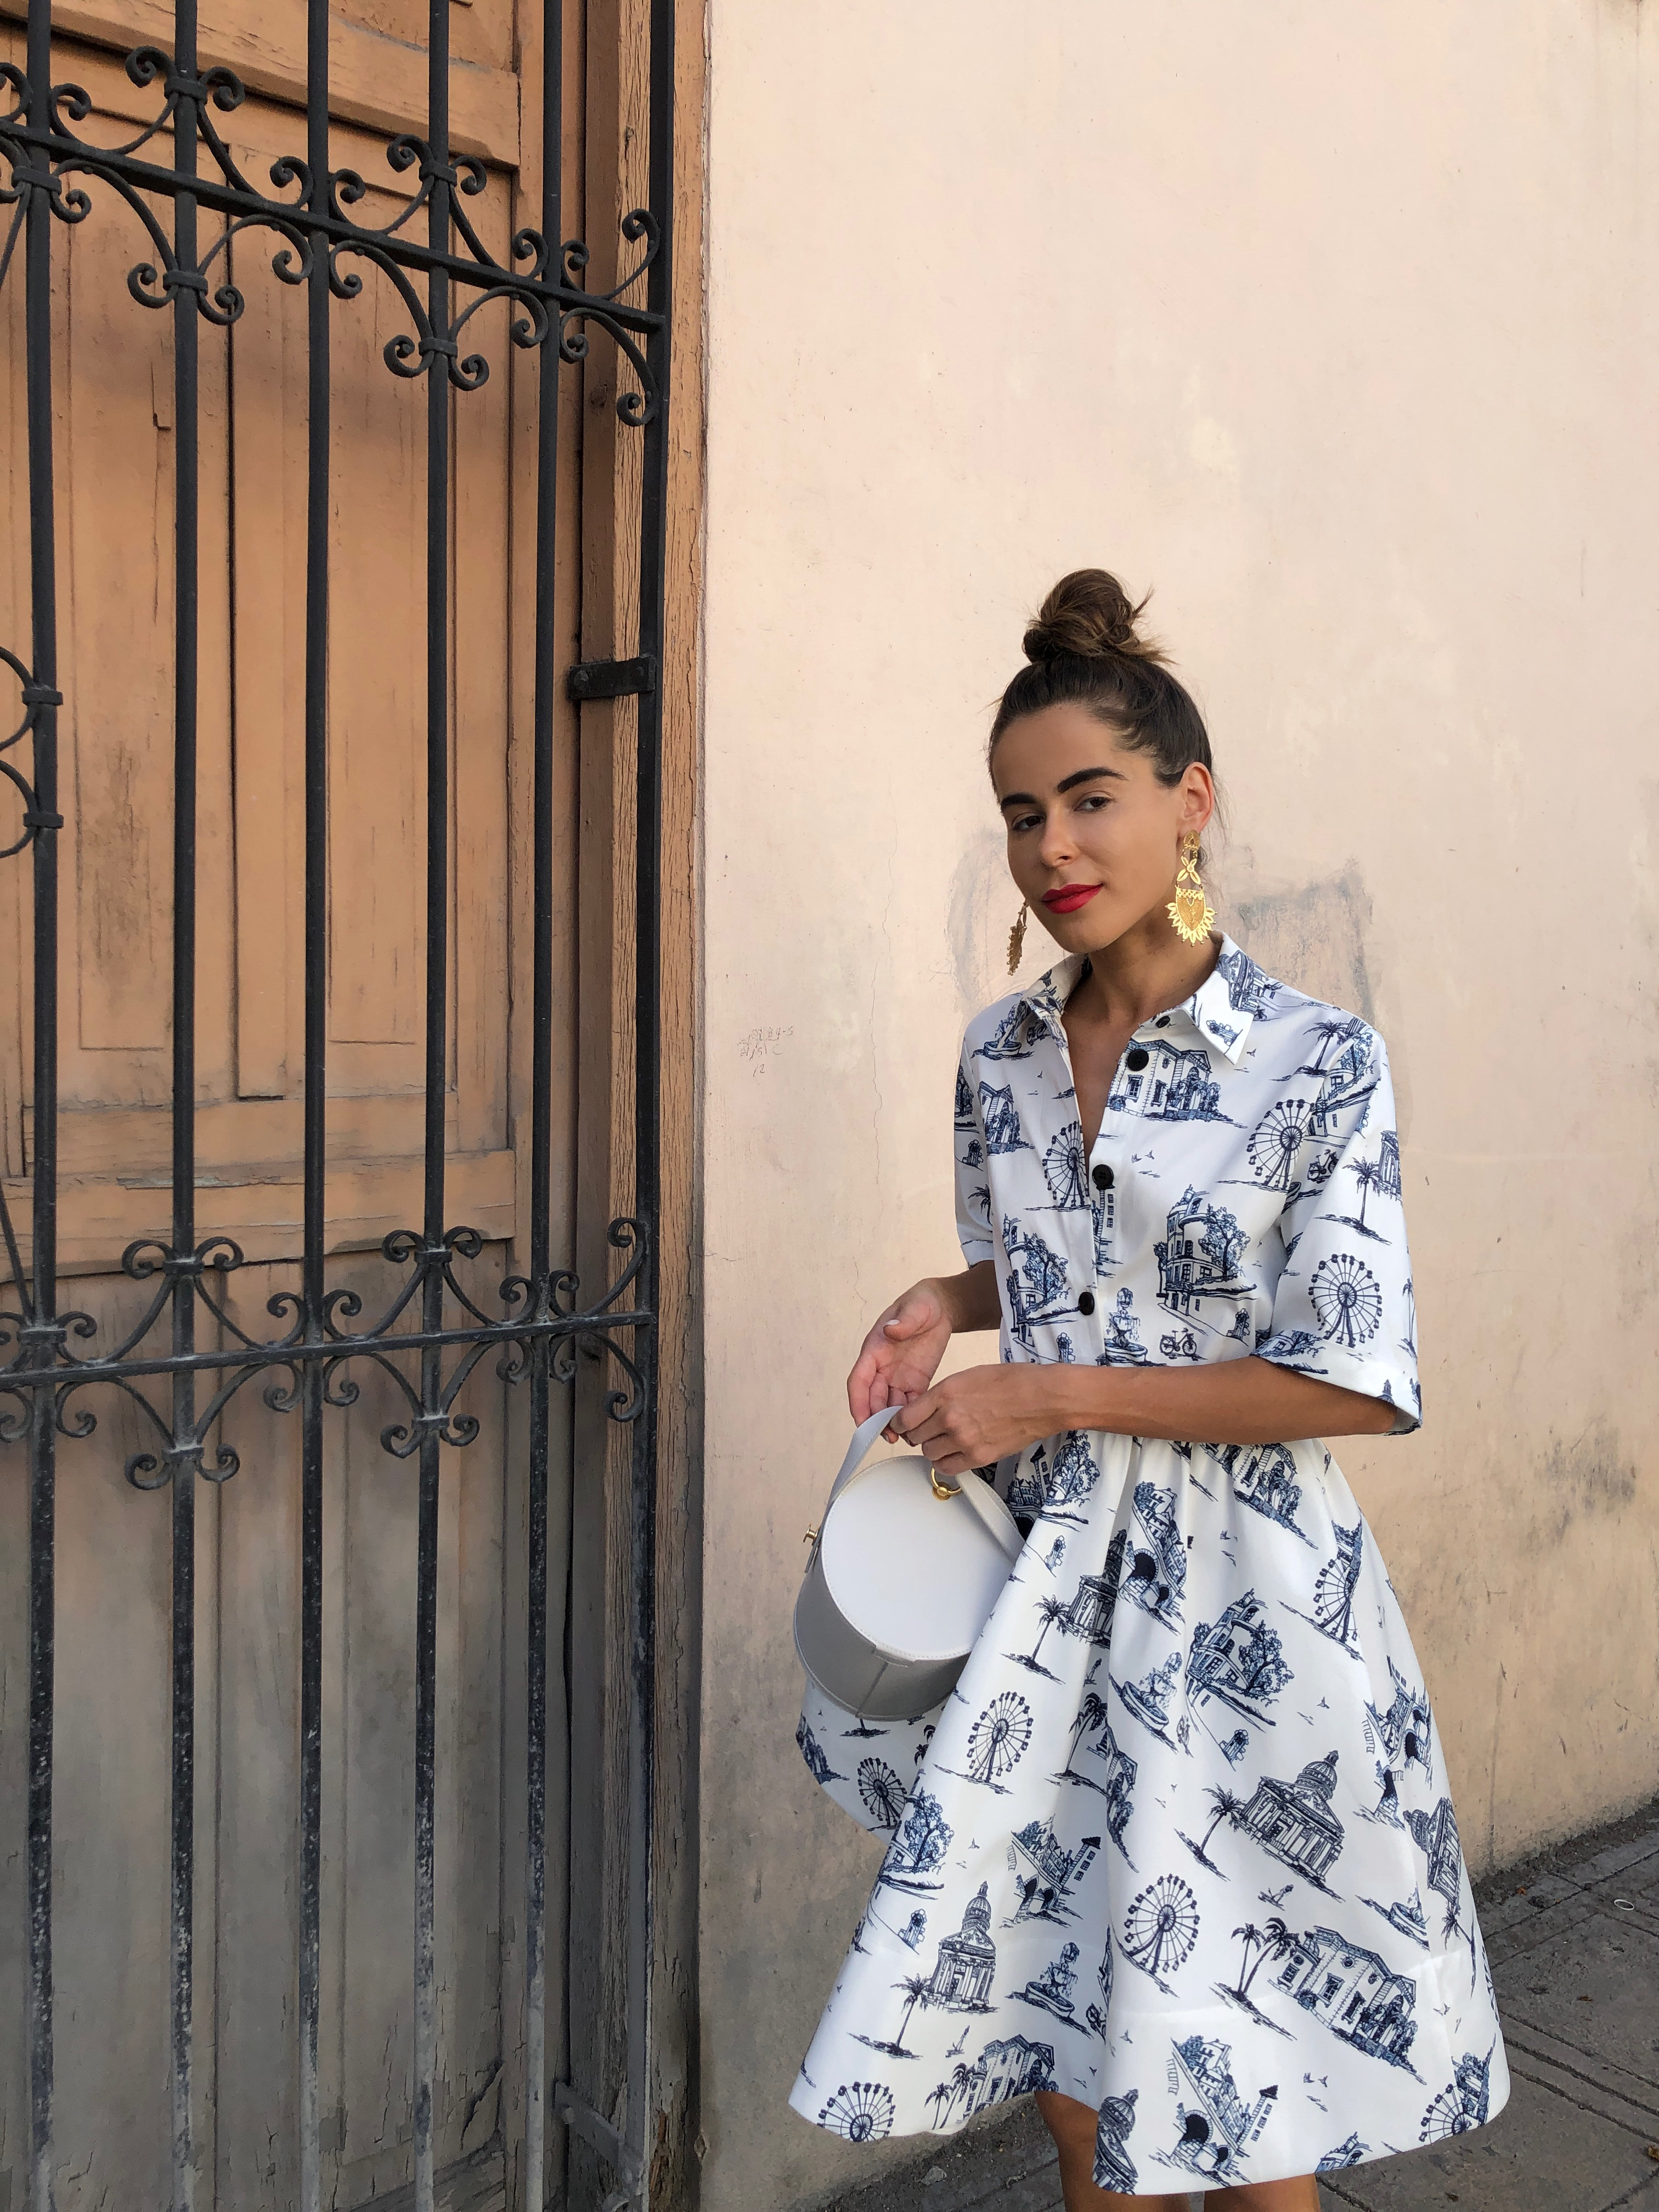 Fashion Blogger Stephanie Hill from The Style Bungalow wears ootd featuring Maje dress